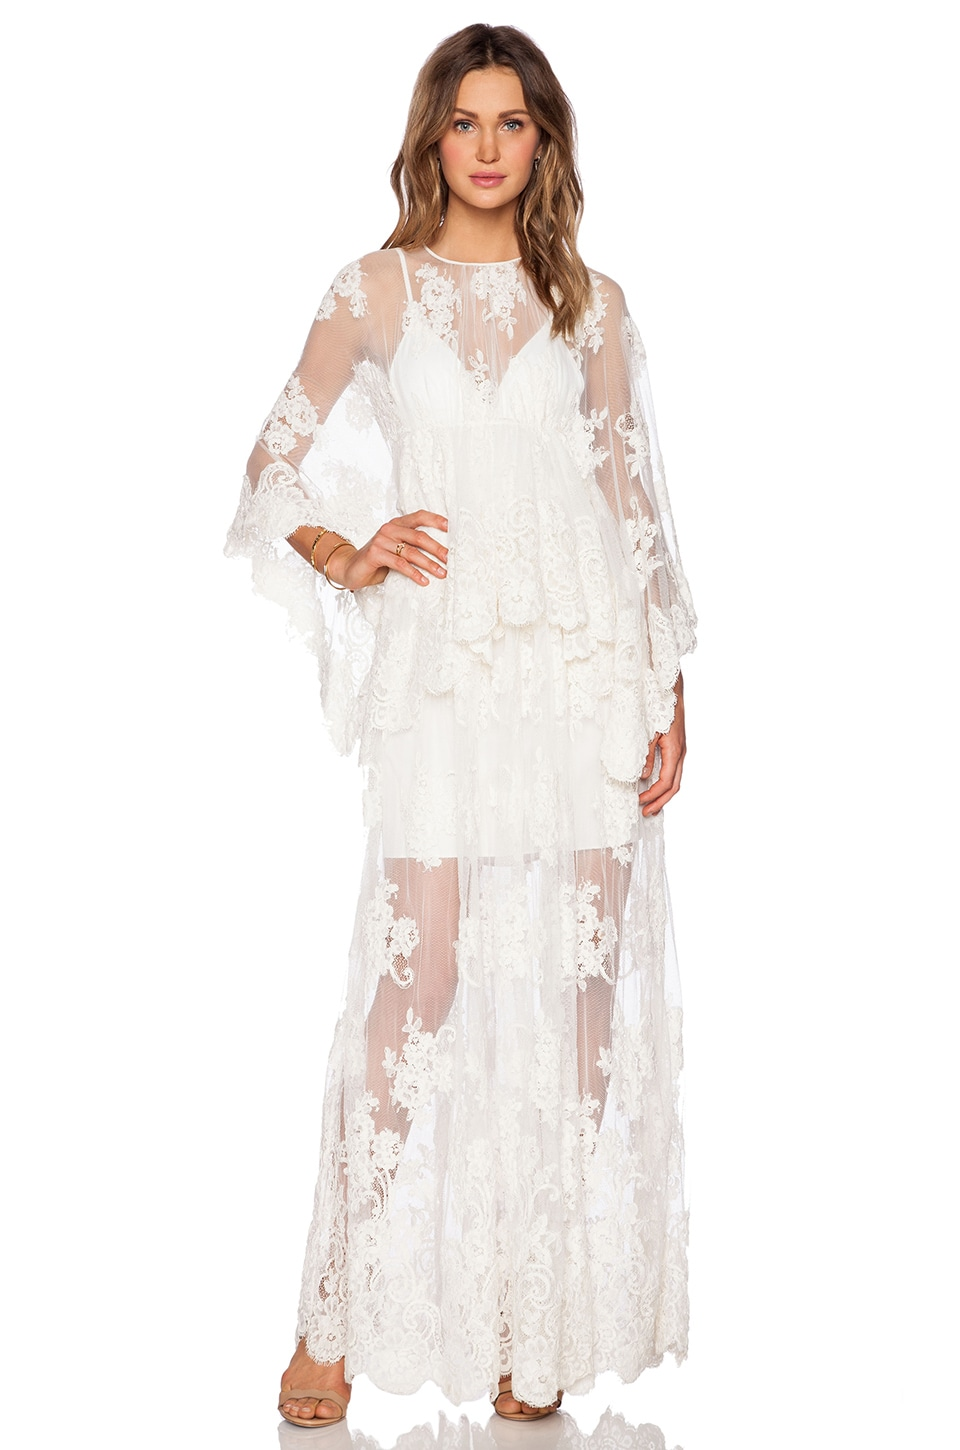 Alexis Lacey Lace Maxi Dress in Cream Embroidery